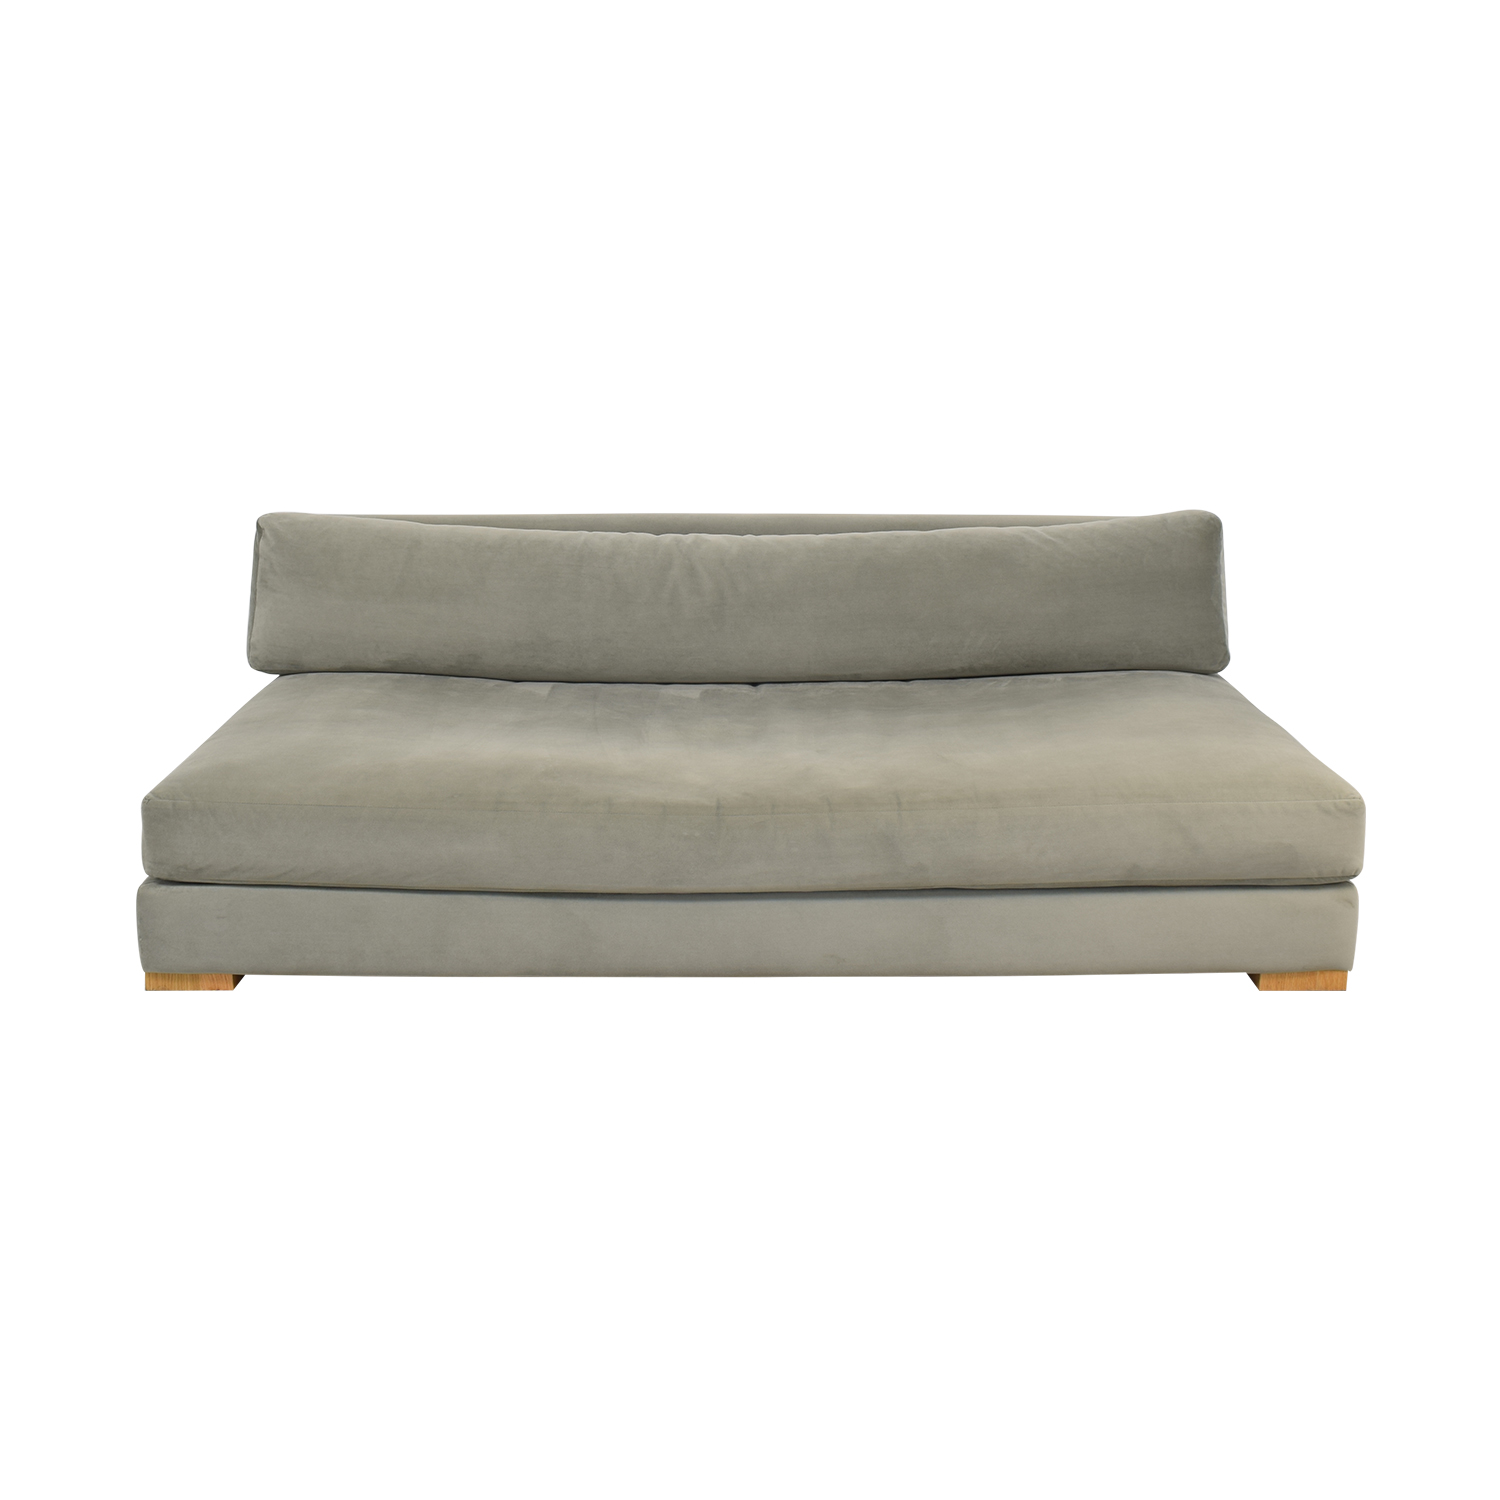 CB2 CB2 Piazza Sofa nj